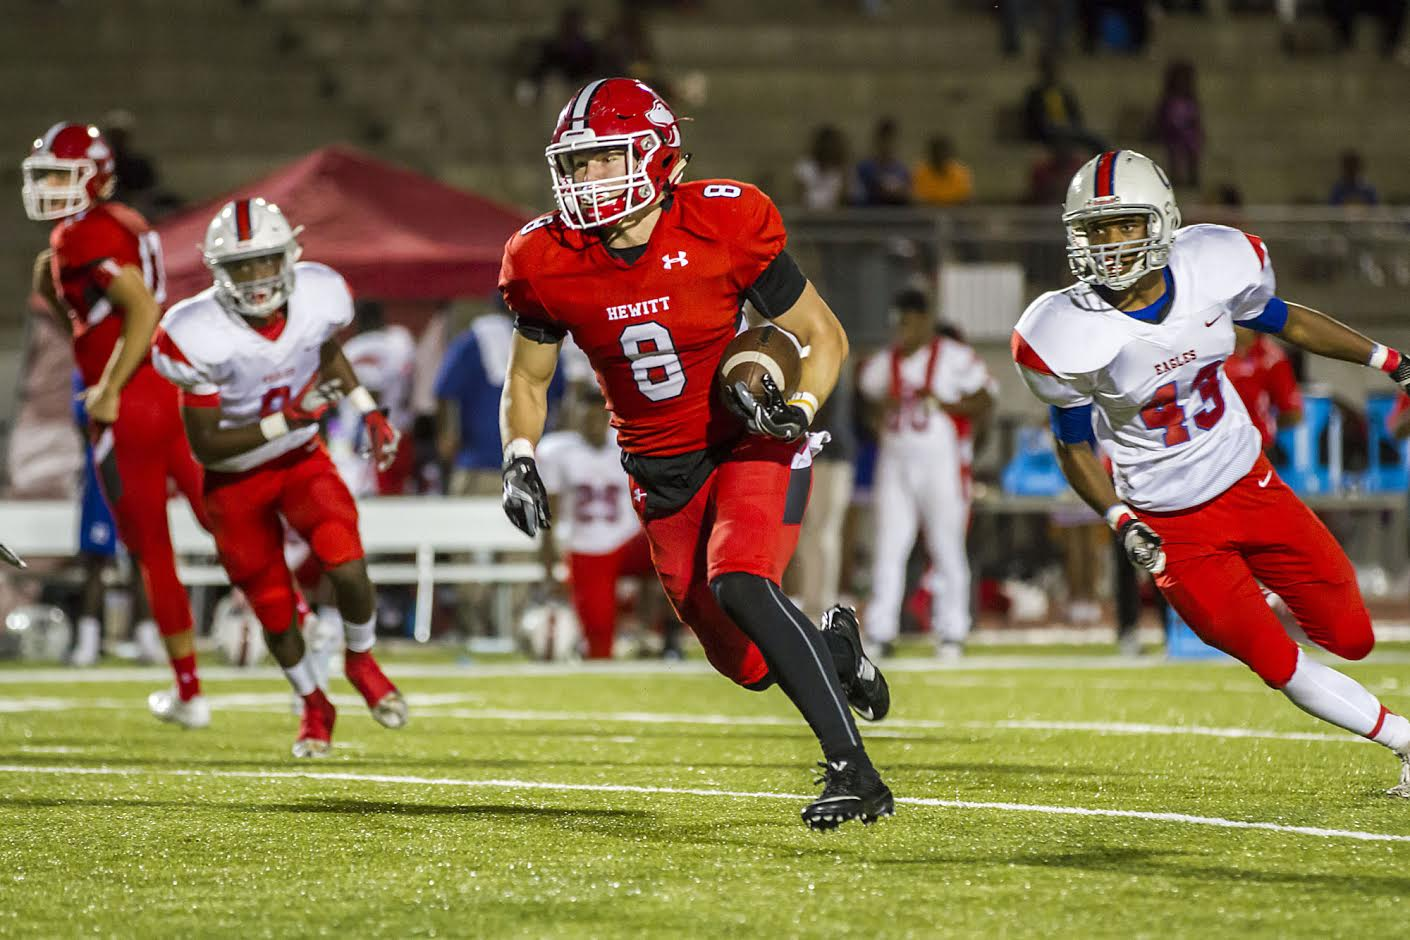 Hewitt-Trussville grounds Center Point 59-0 during Huskies homecoming game